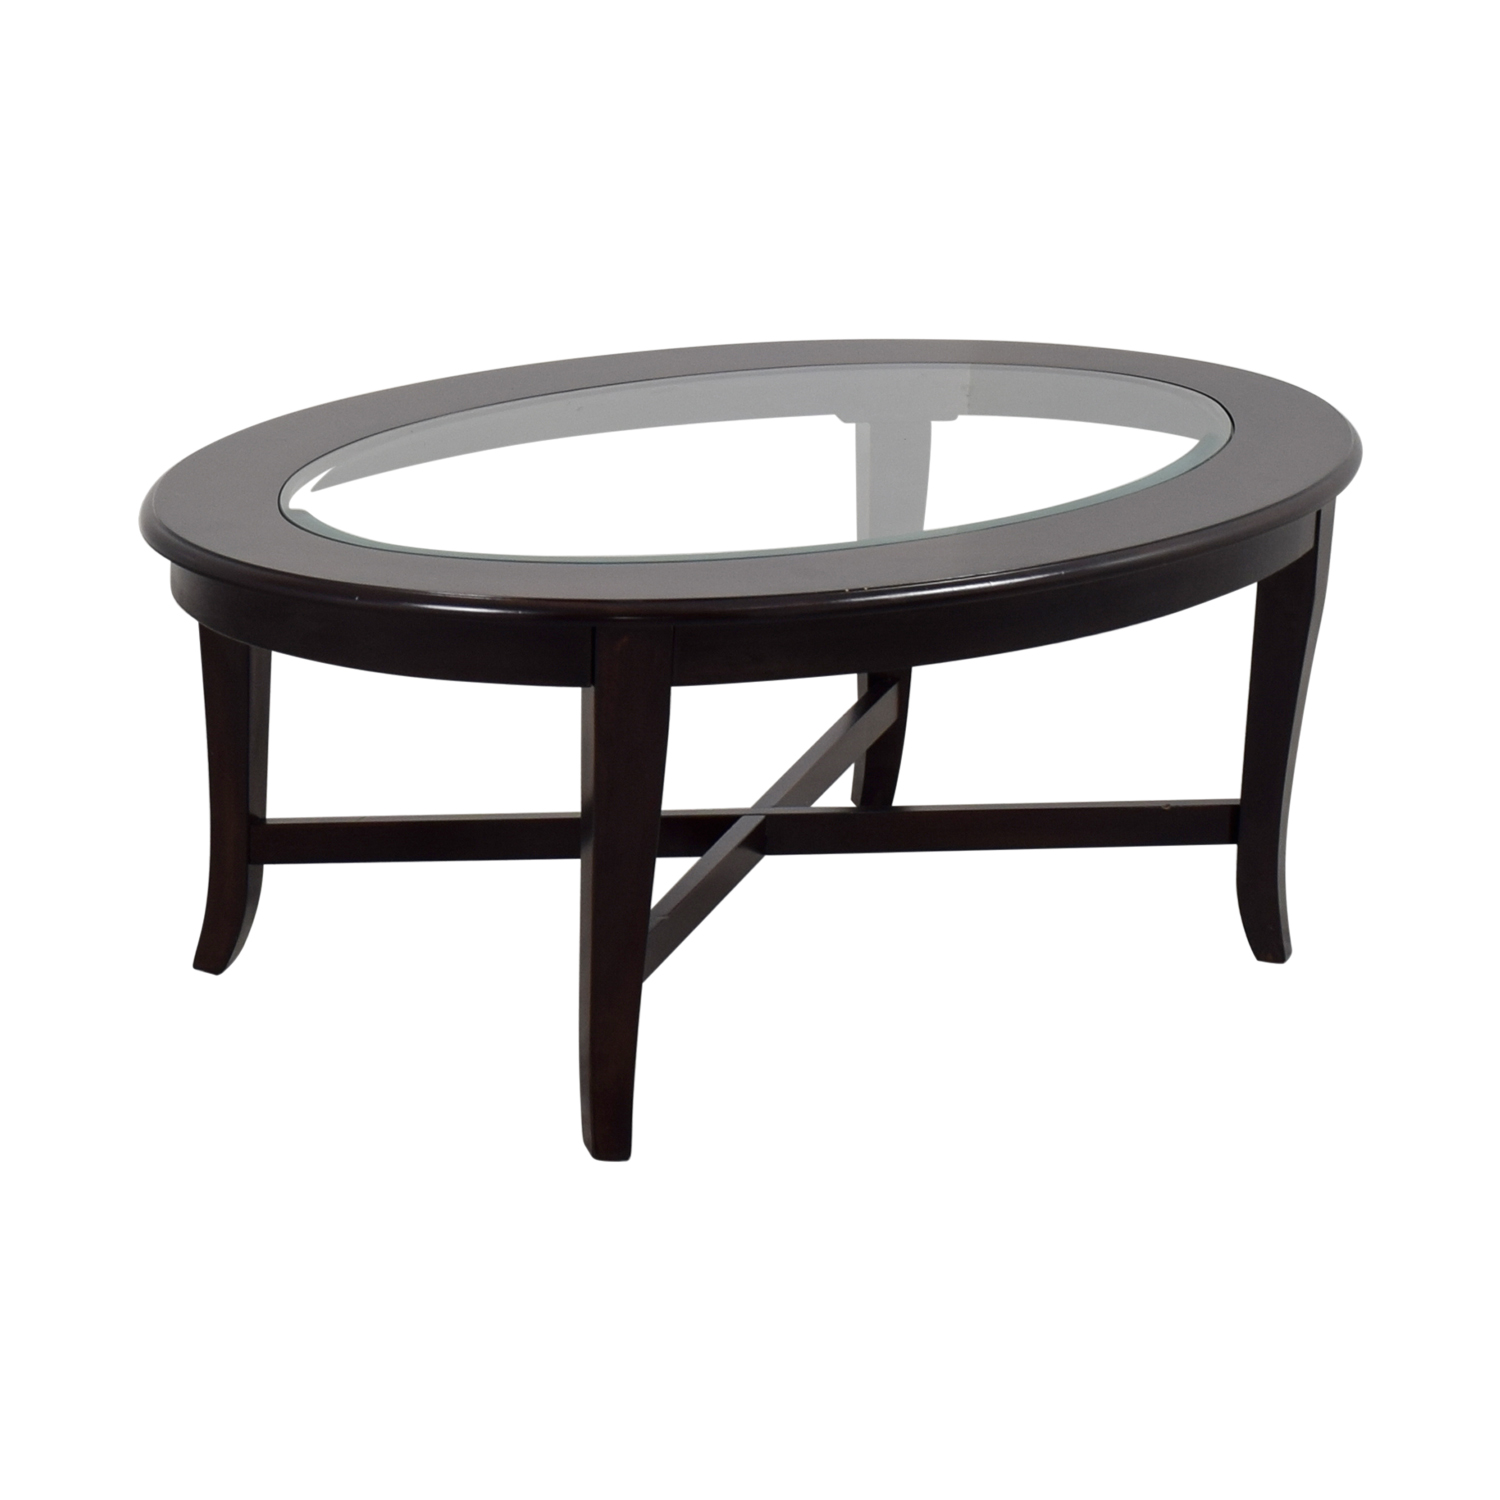 Bobs Furniture Bobs Furniture Oval Glass Coffee Table